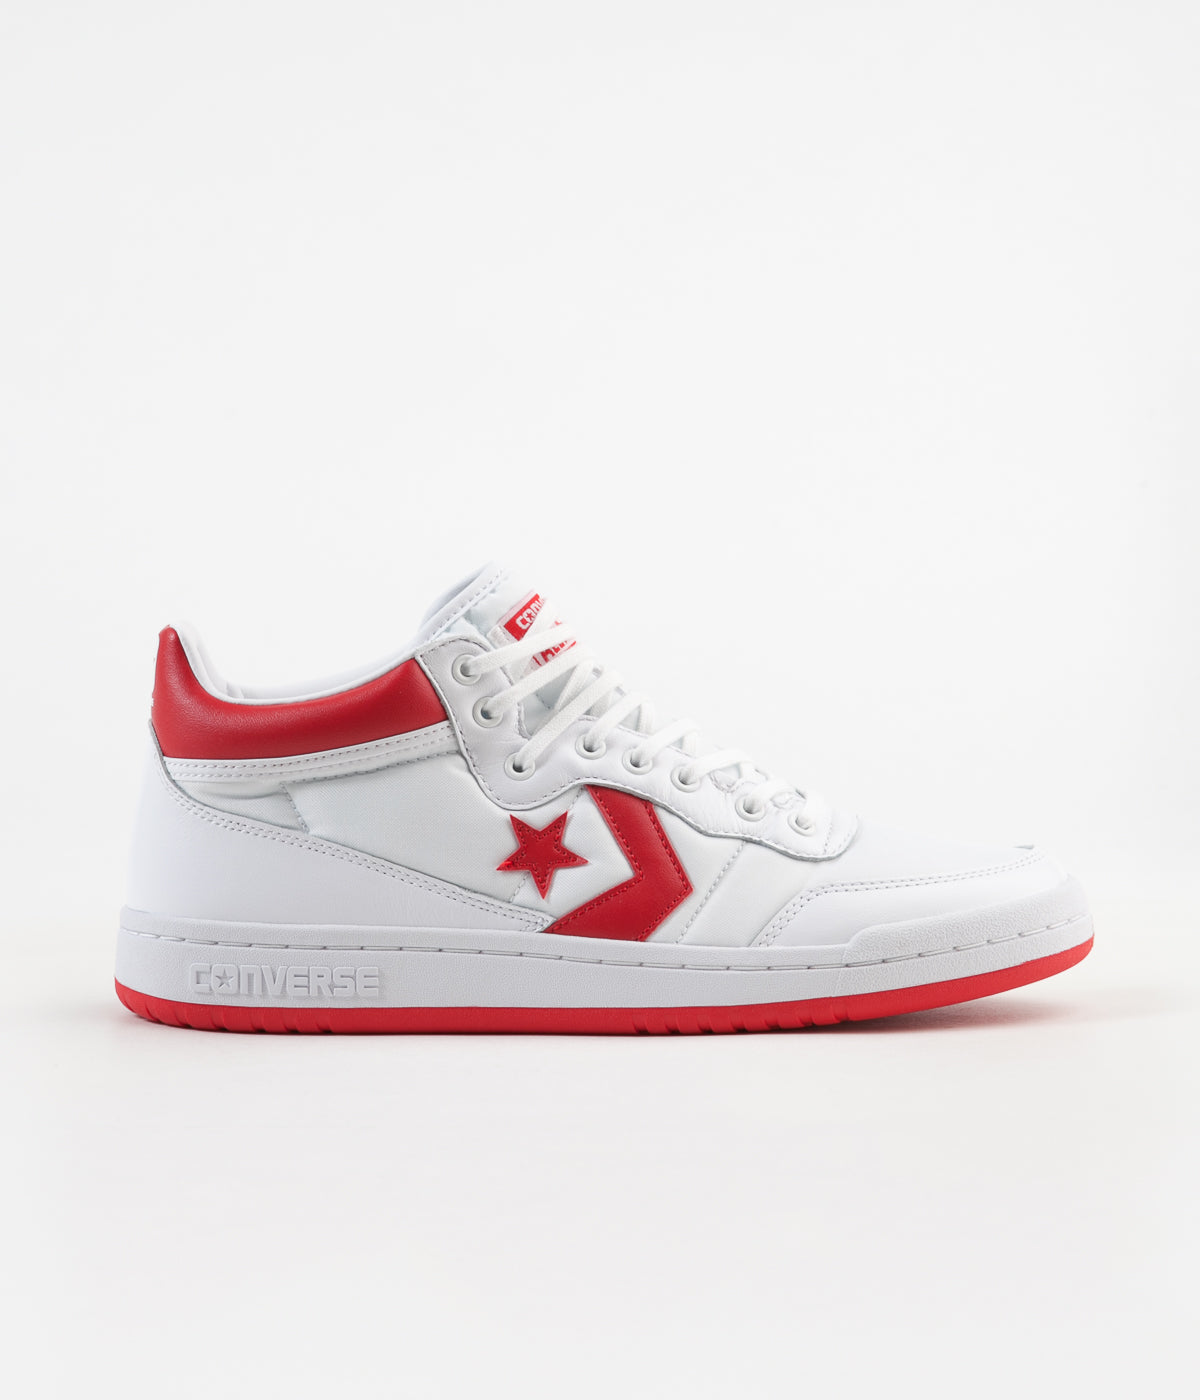 Converse Fastbreak Mid Shoes - White / Casino / White